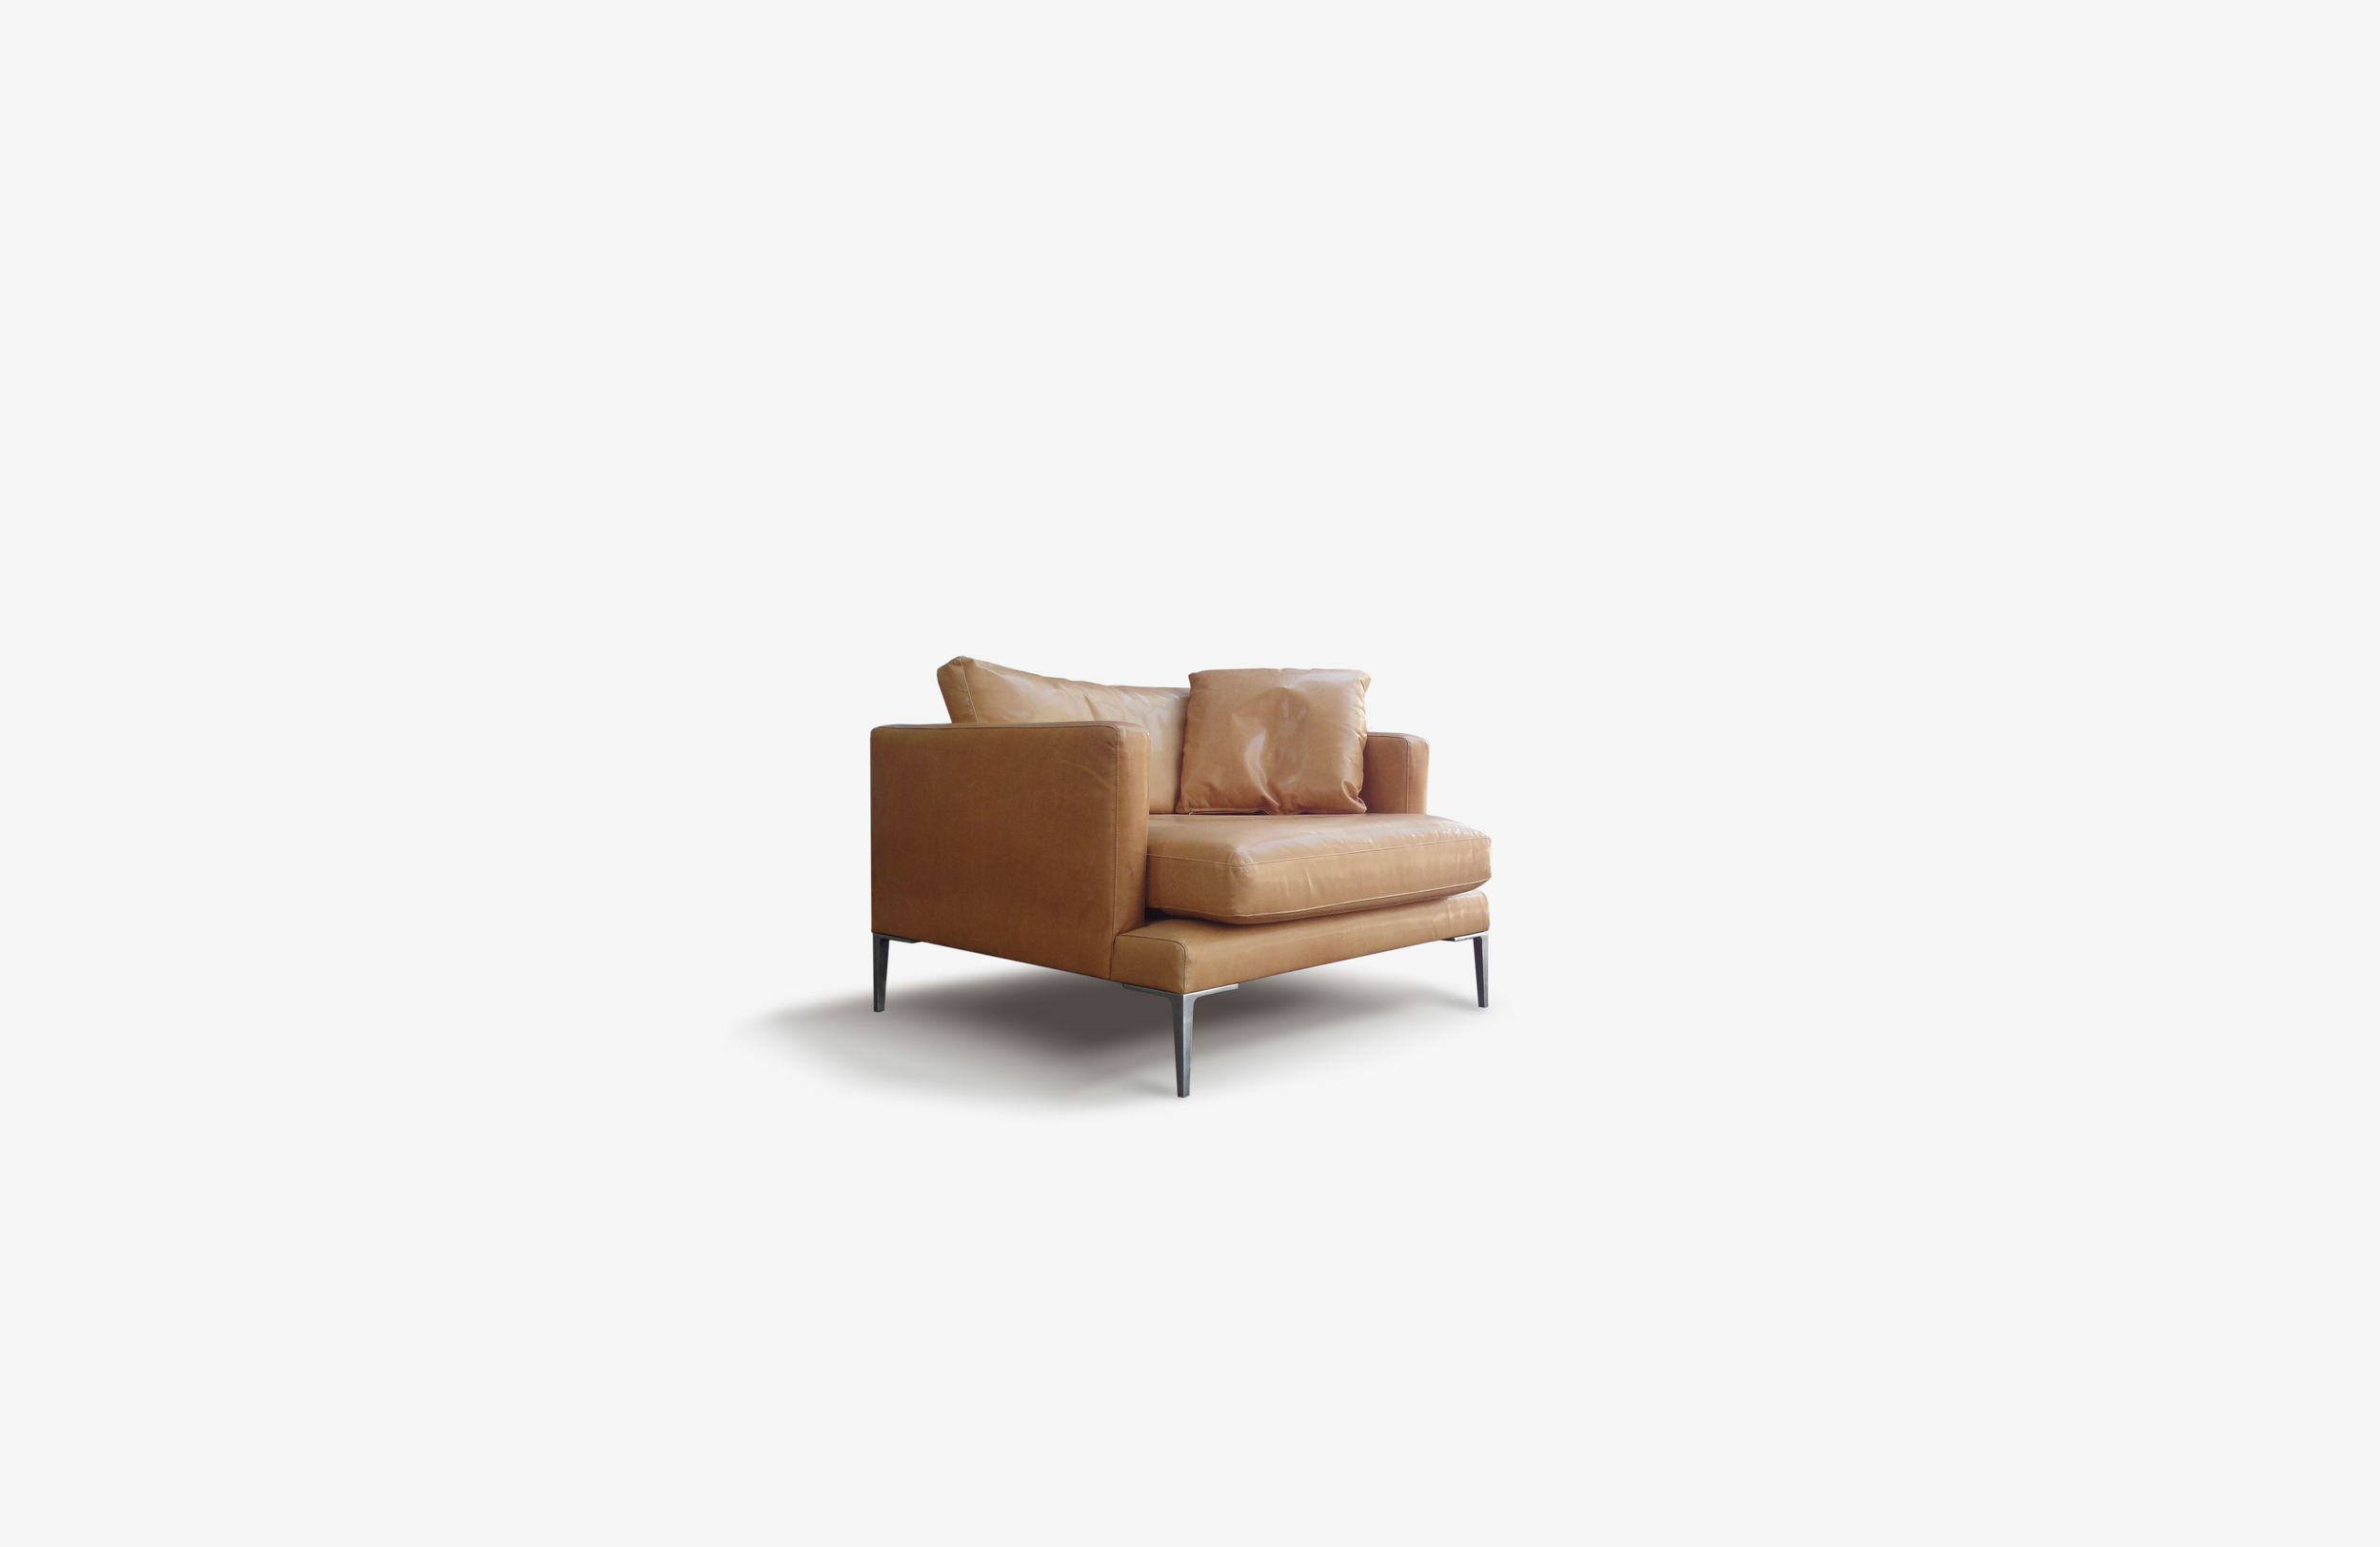 Lennon sofa   With its deep and comfortable seating, the Lennon invites you to relax.   It offers a well-engineered design that appears to float on elegant brushed aluminium or powder coated legs, functional yet stylish.   Great for: Stylish, modern family home.   Technical information